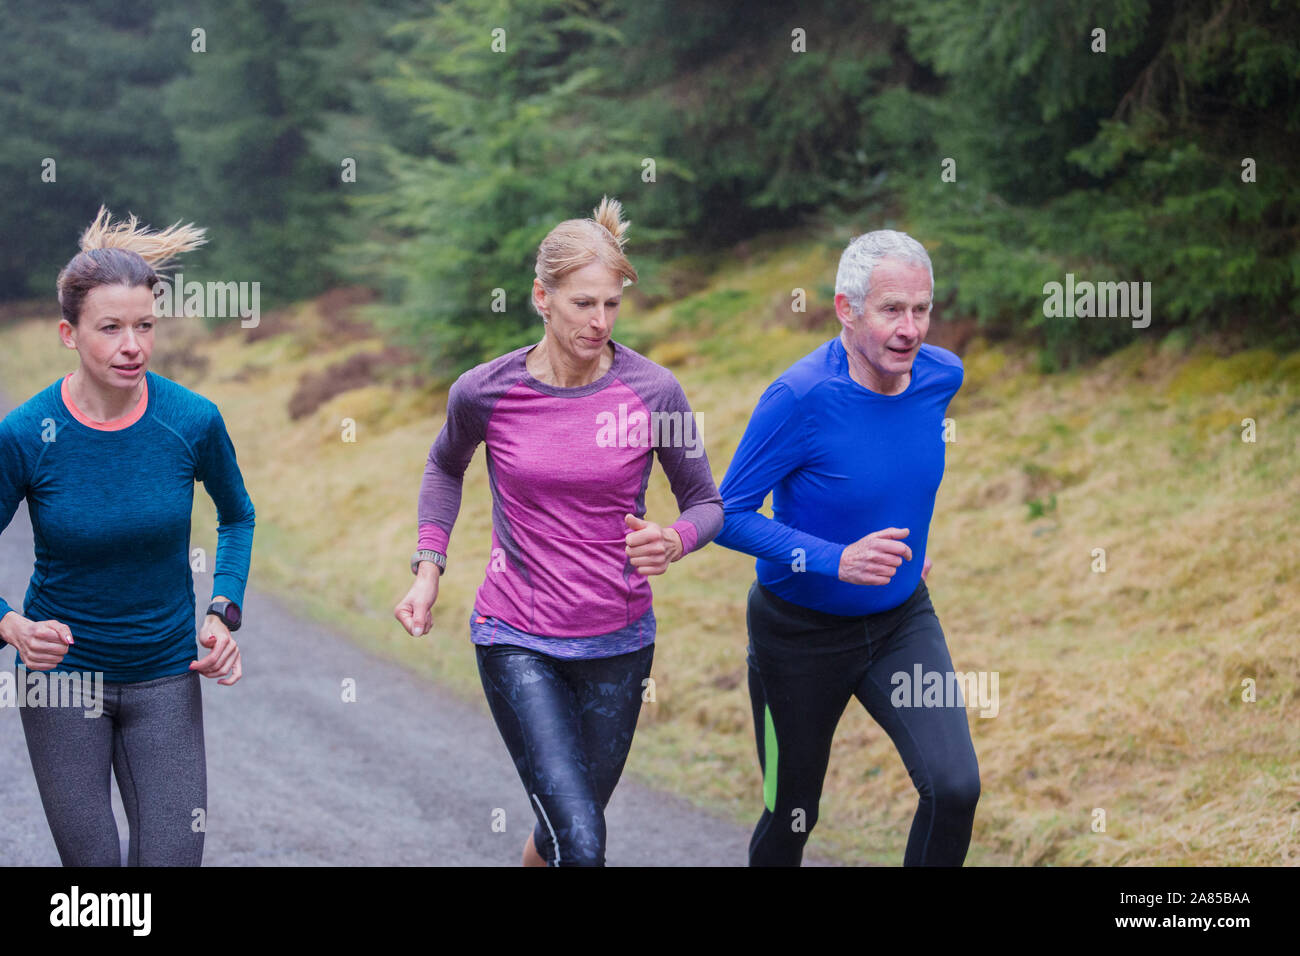 Family jogging on trail in rainy woods Stock Photo